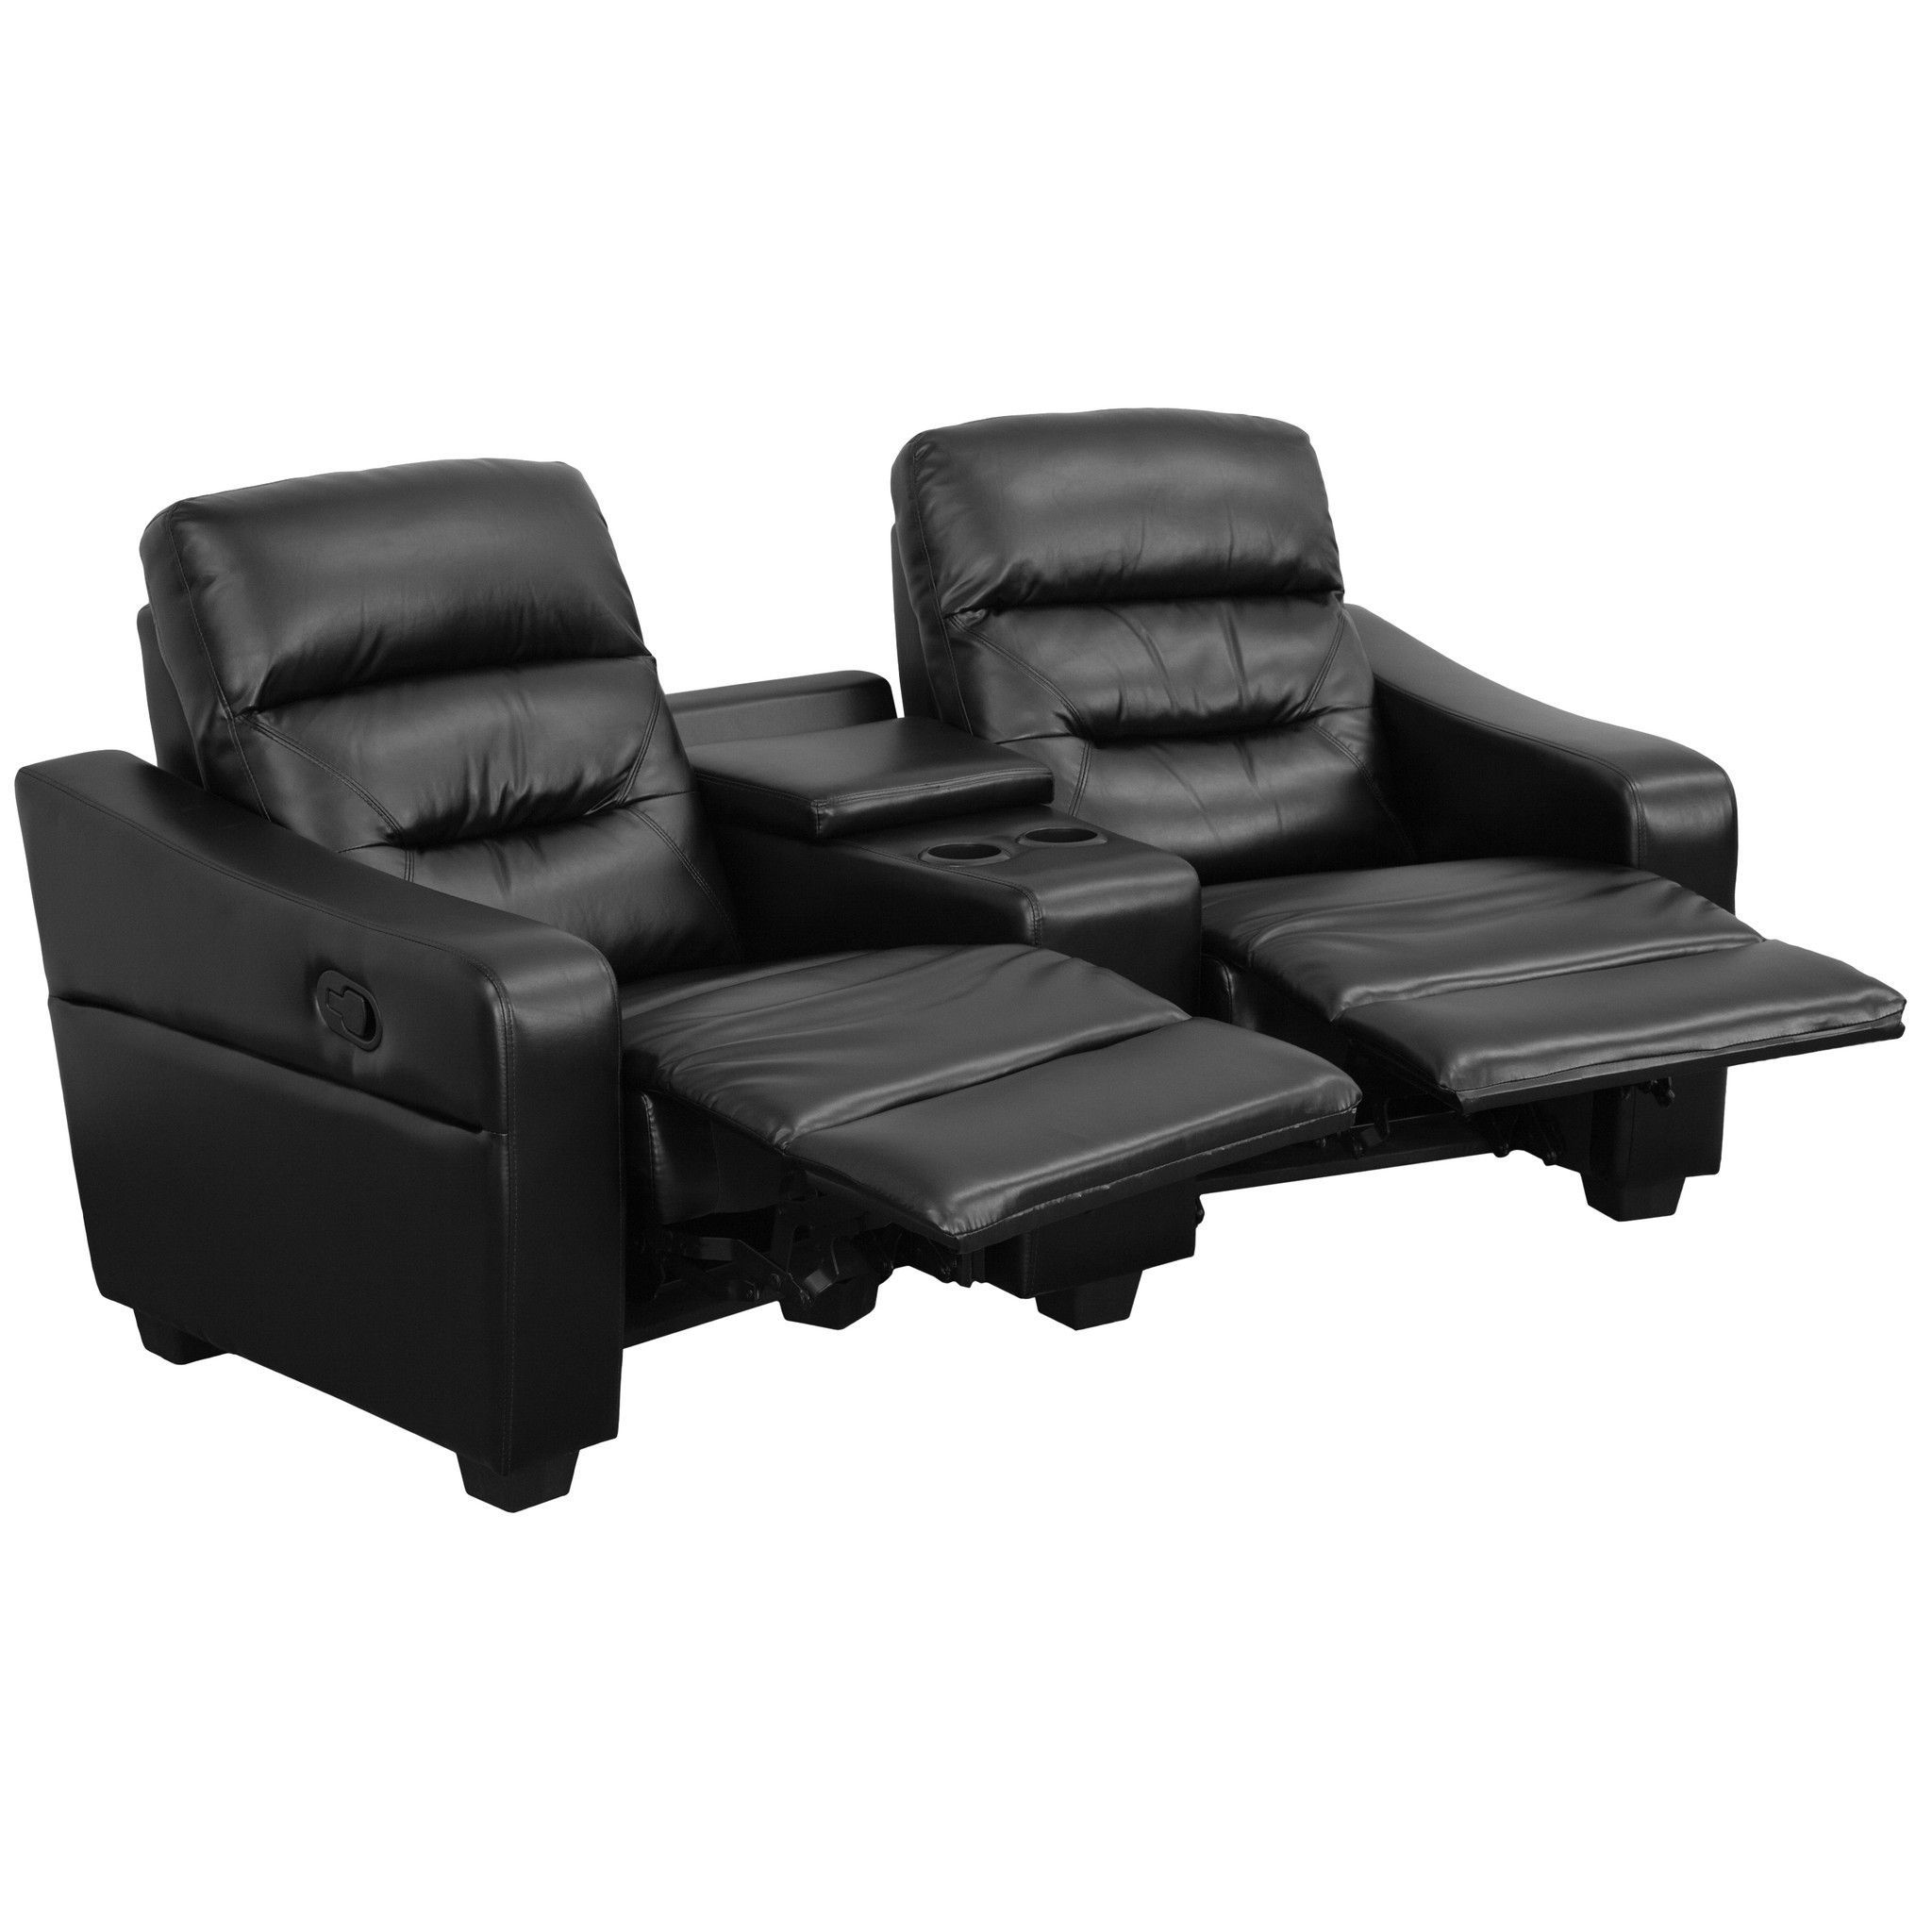 Flash Furniture Futura Series 2-Seat Reclining Black Leather Theater Seating Unit with Cup Holders  sc 1 st  Pinterest : 2 seater theatre recliner - islam-shia.org